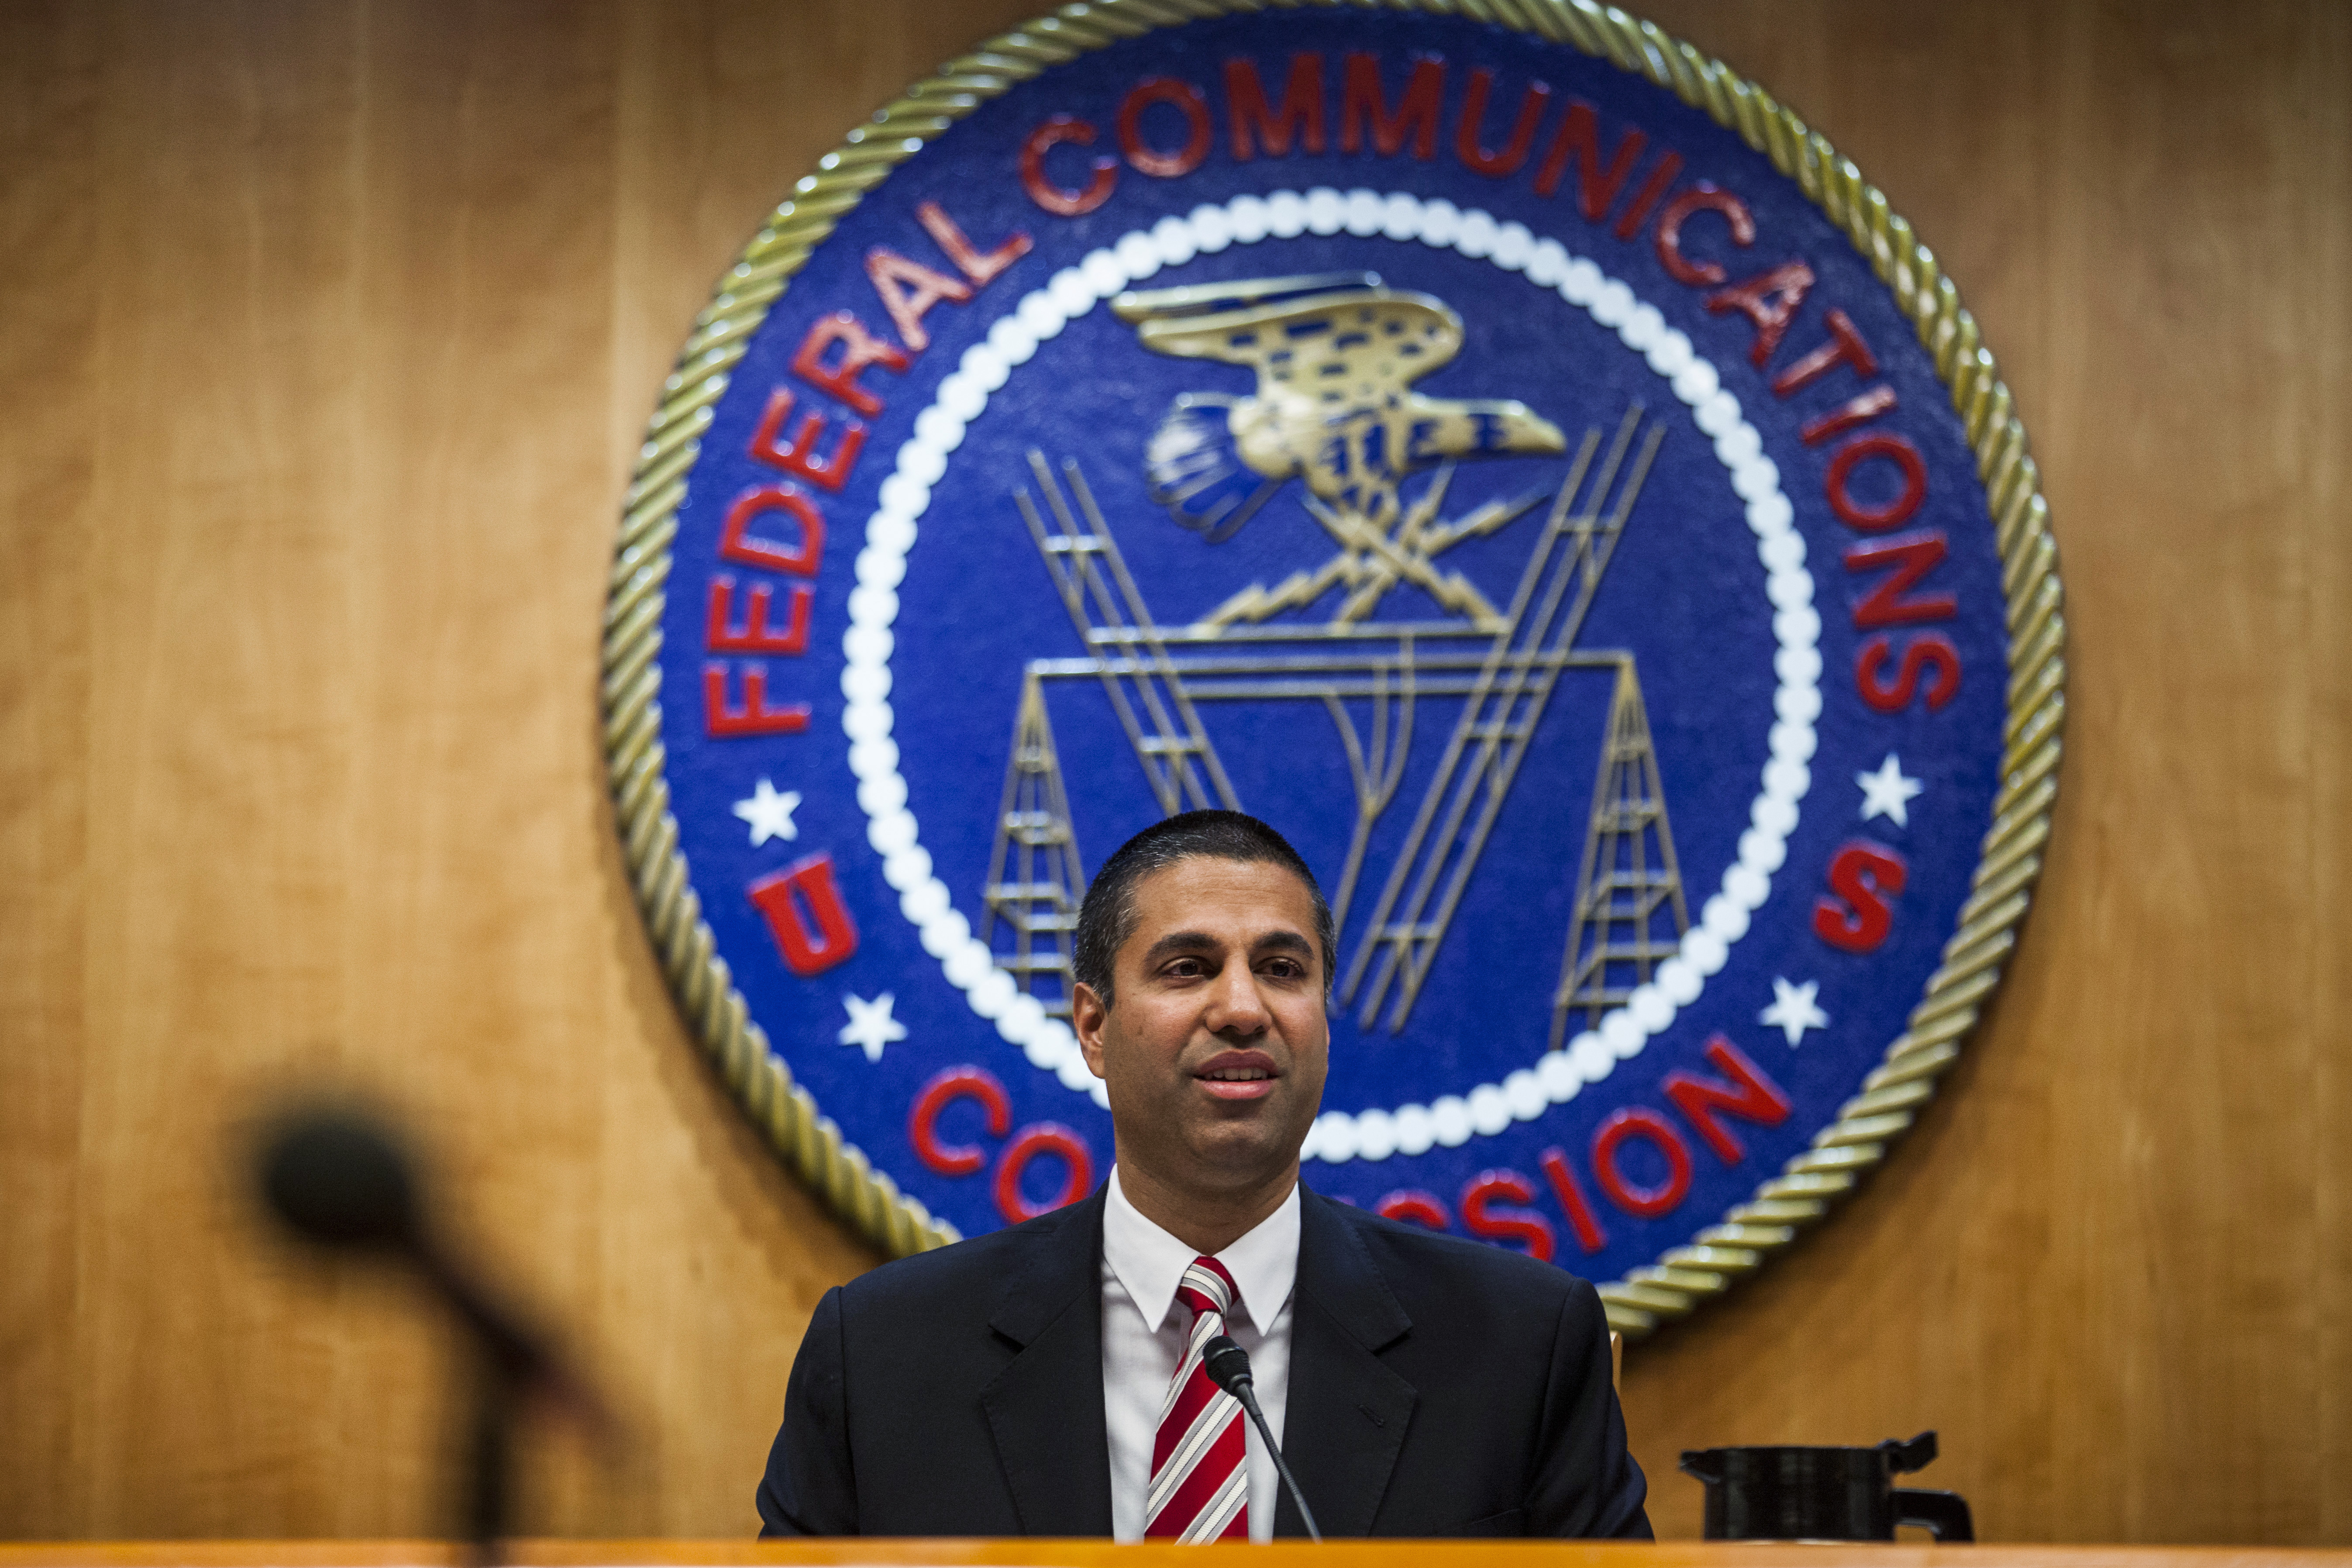 Ajit Pai, chairman of the Federal Communications Commission (FCC), speaks during an open meeting in Washington, D.C., U.S., on Thursday, Nov. 16, 2017.